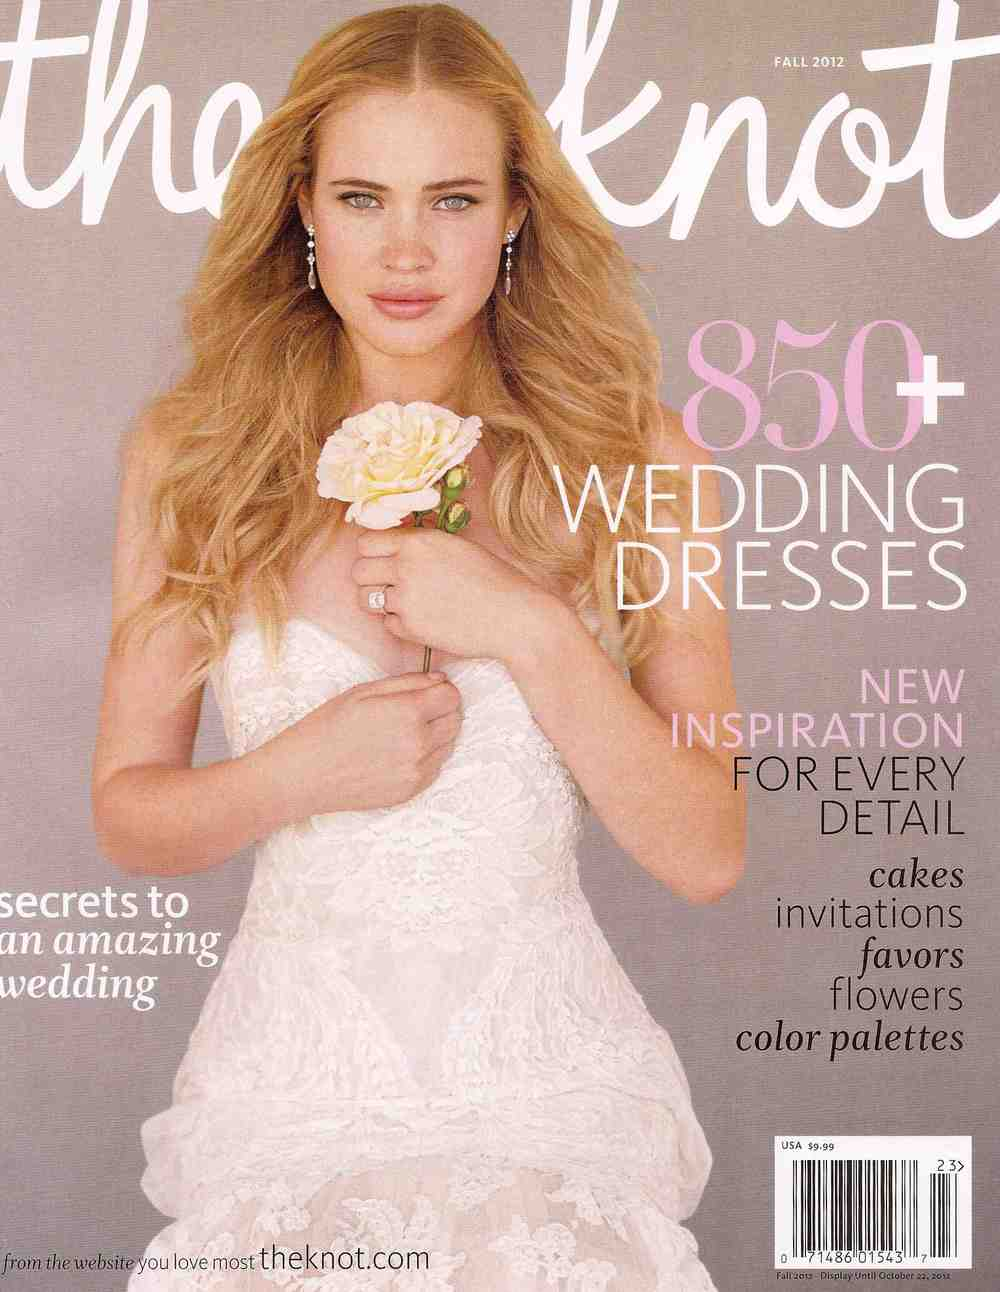 The Knot Fall 2012 Cover.jpg